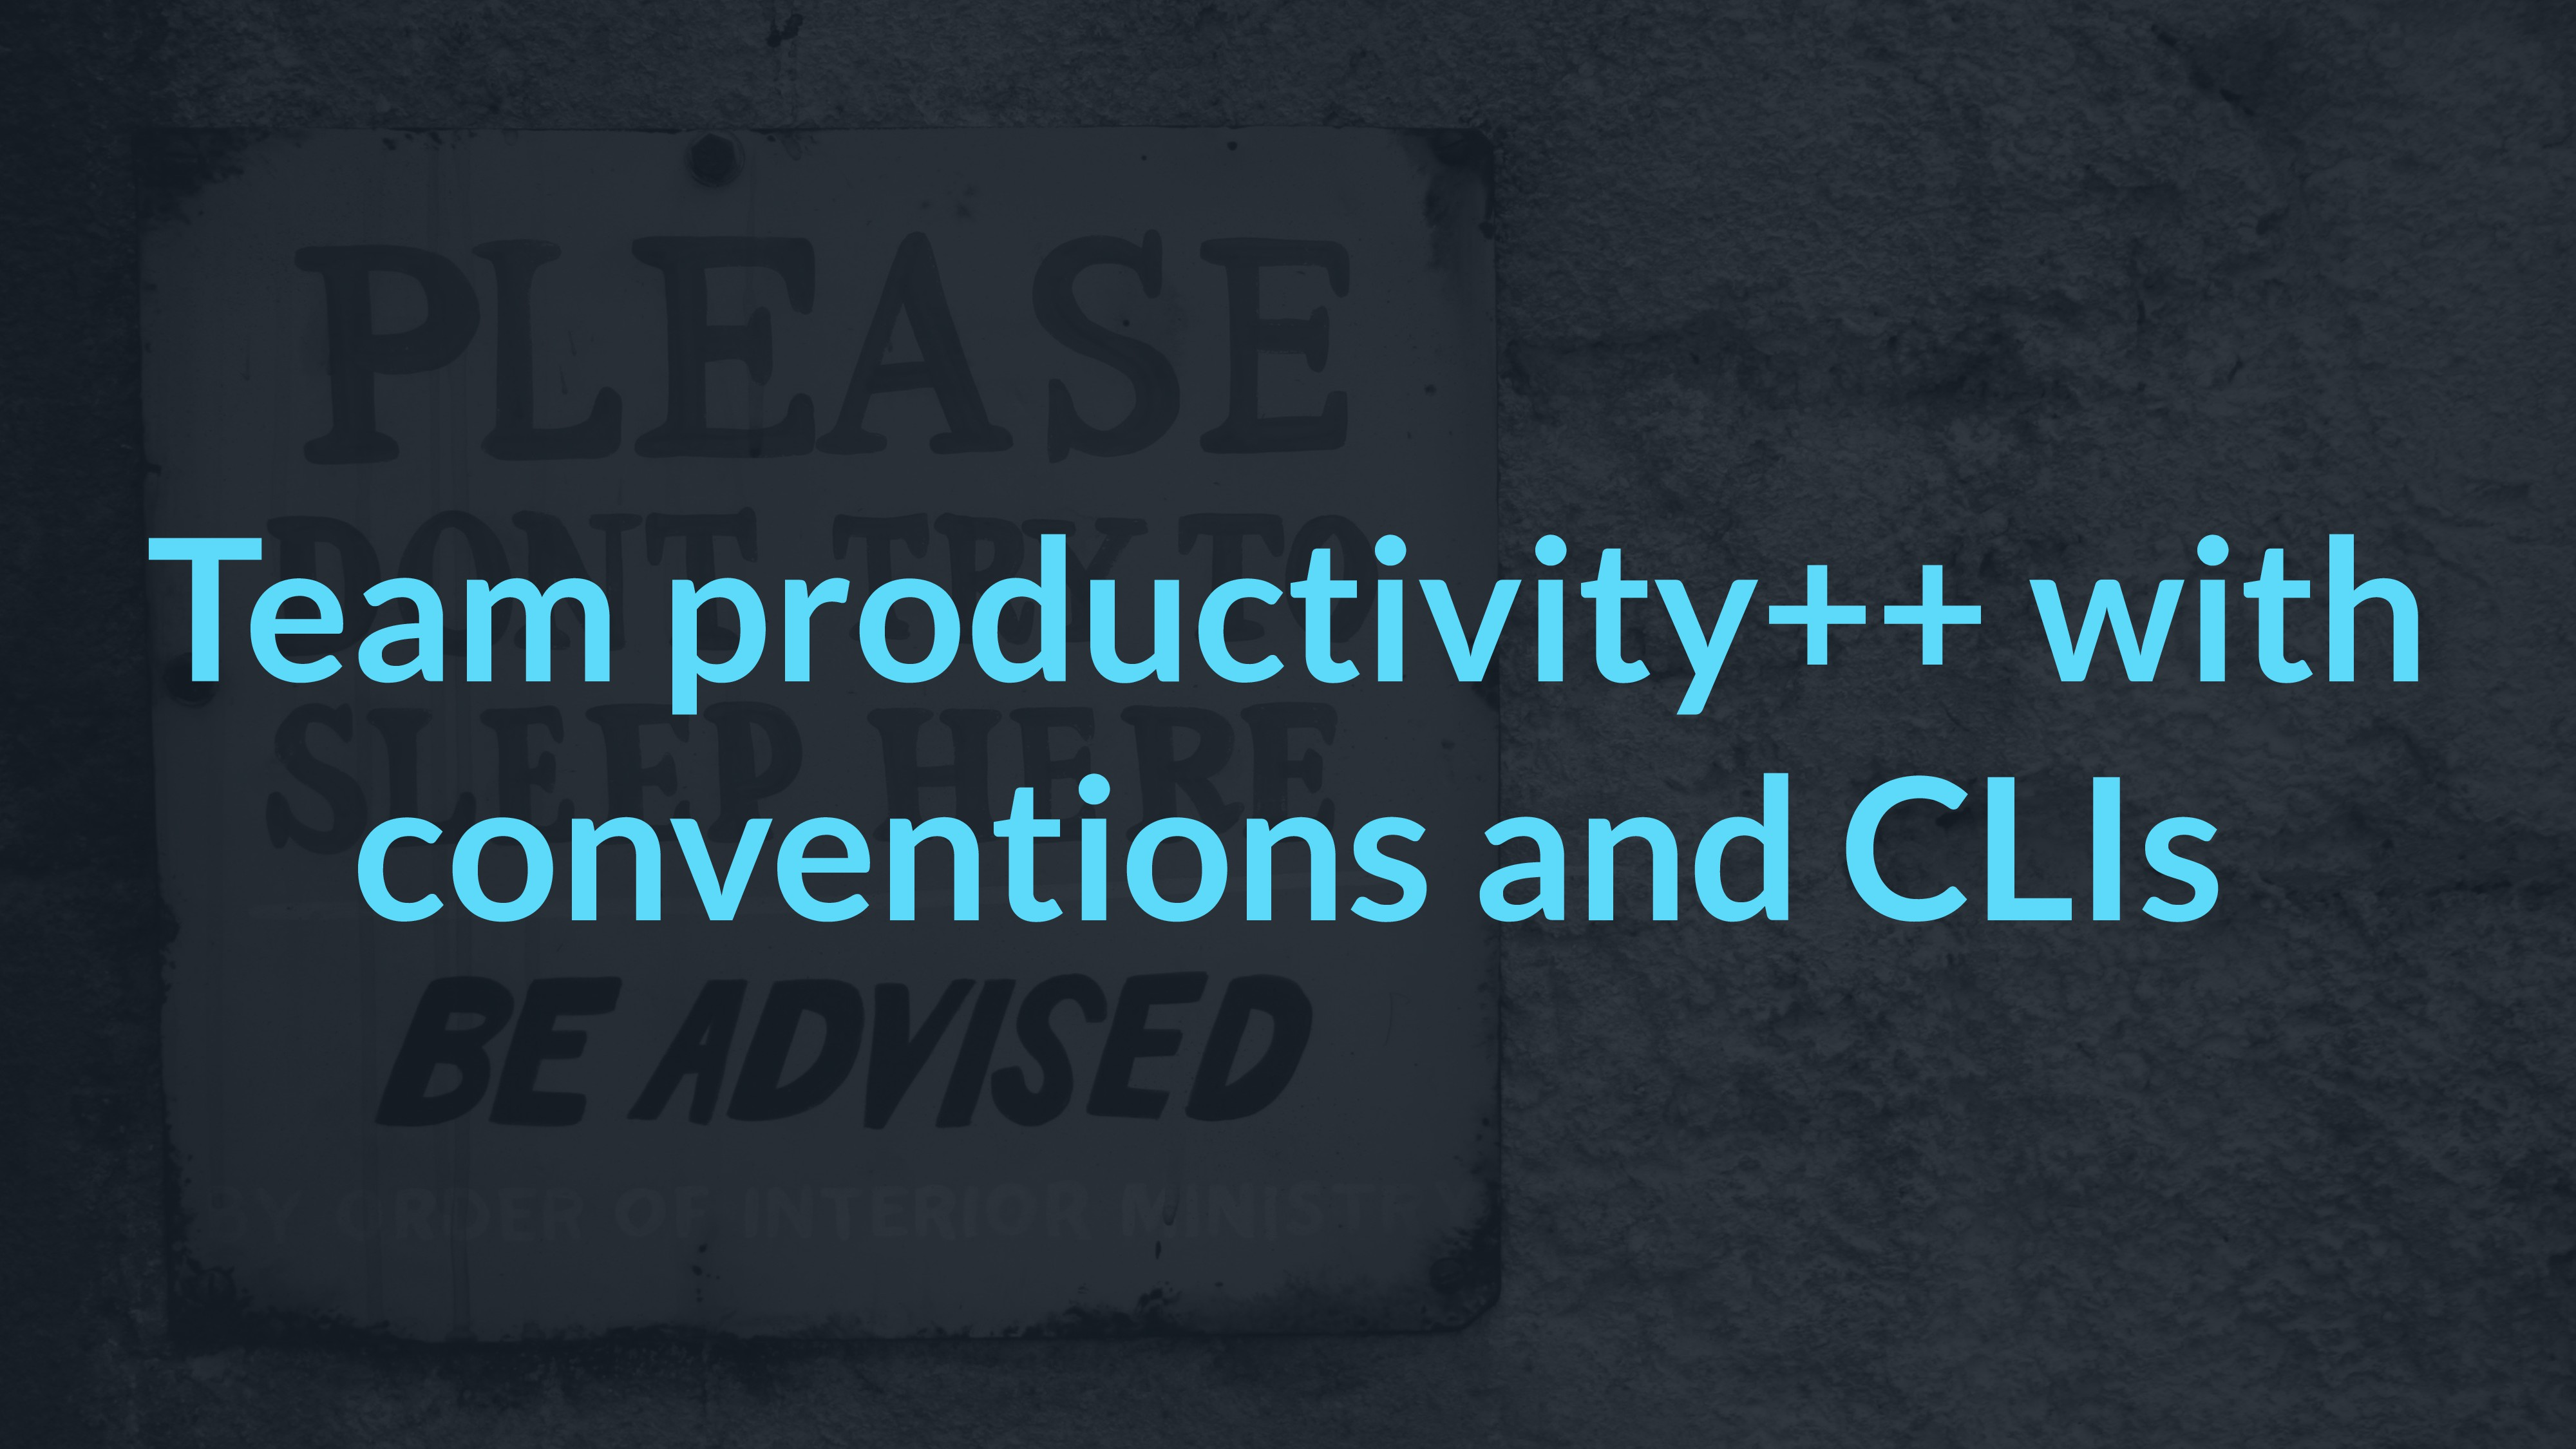 Team productivity++ with conventions and CLIs